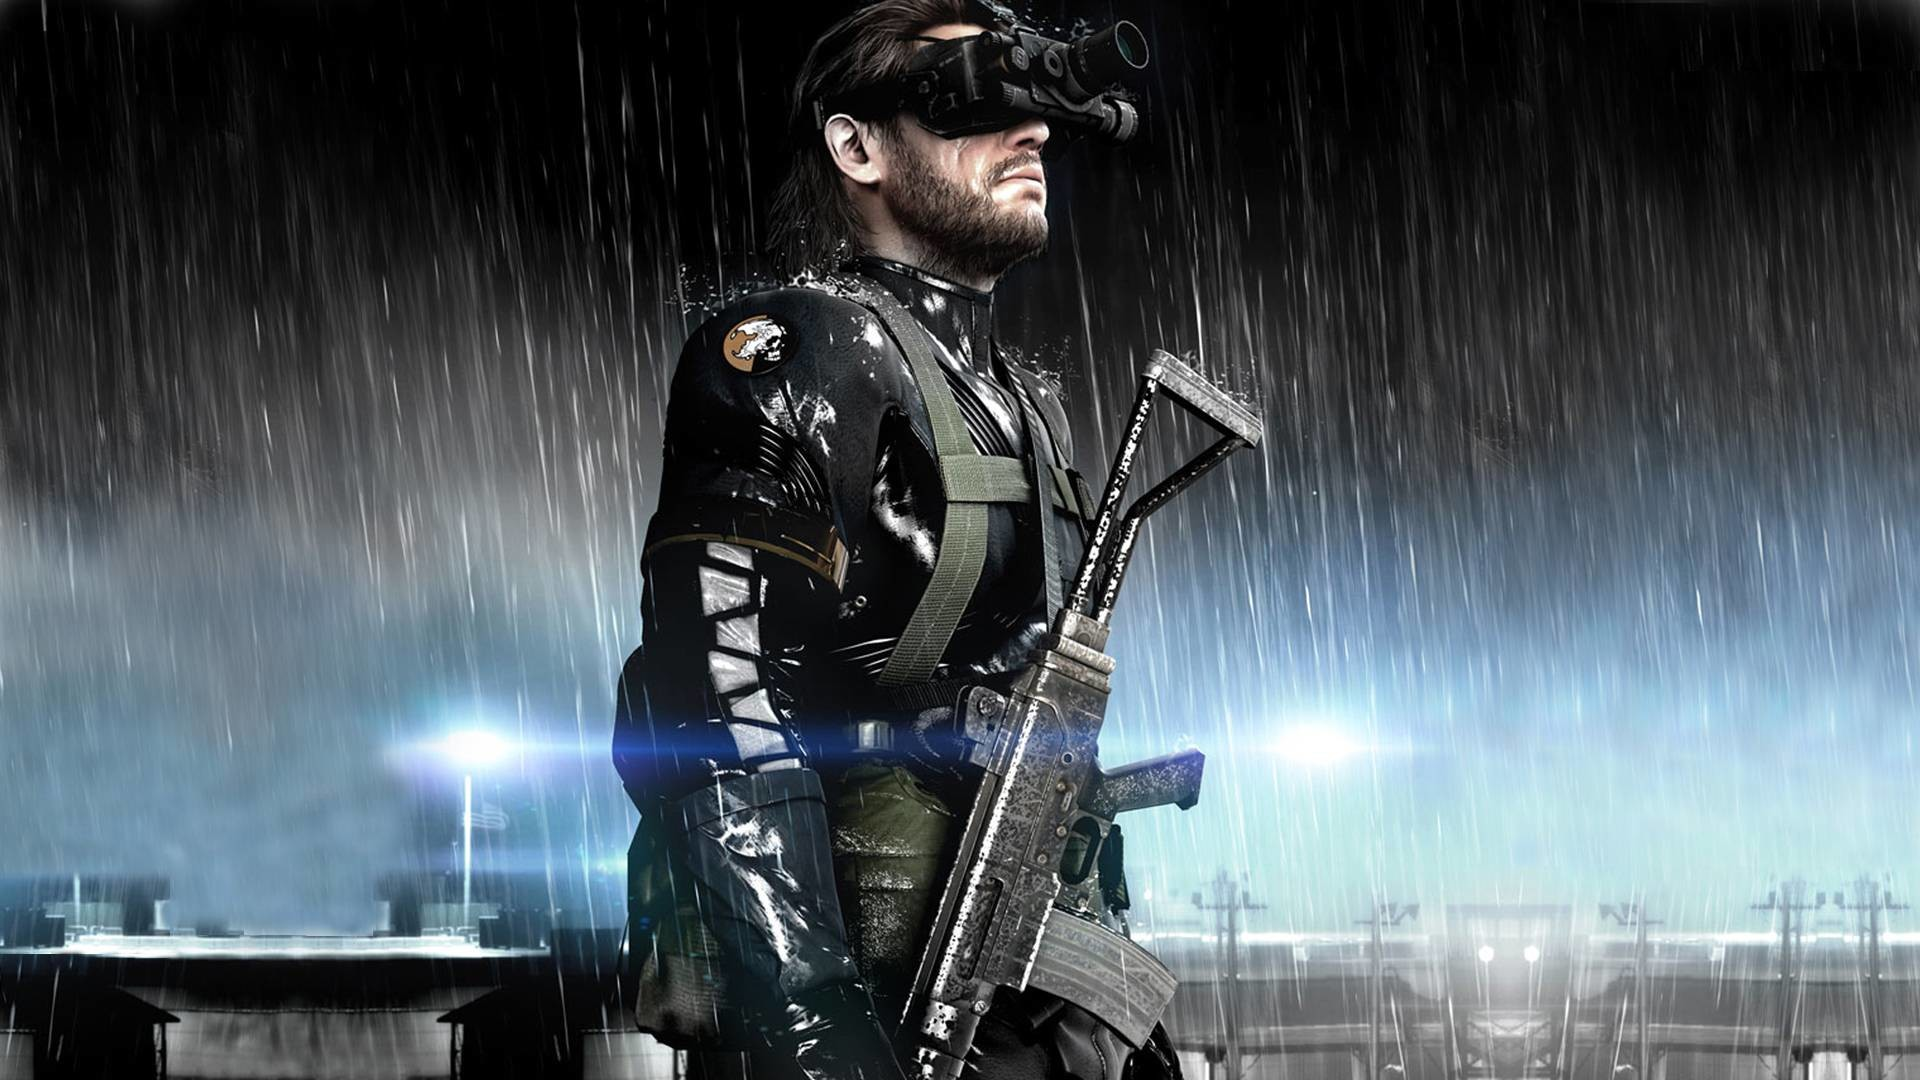 1920x1080 Metal Gear Solid Ground Zeroes Wallpapers In HD Â« GamingBolt.com .